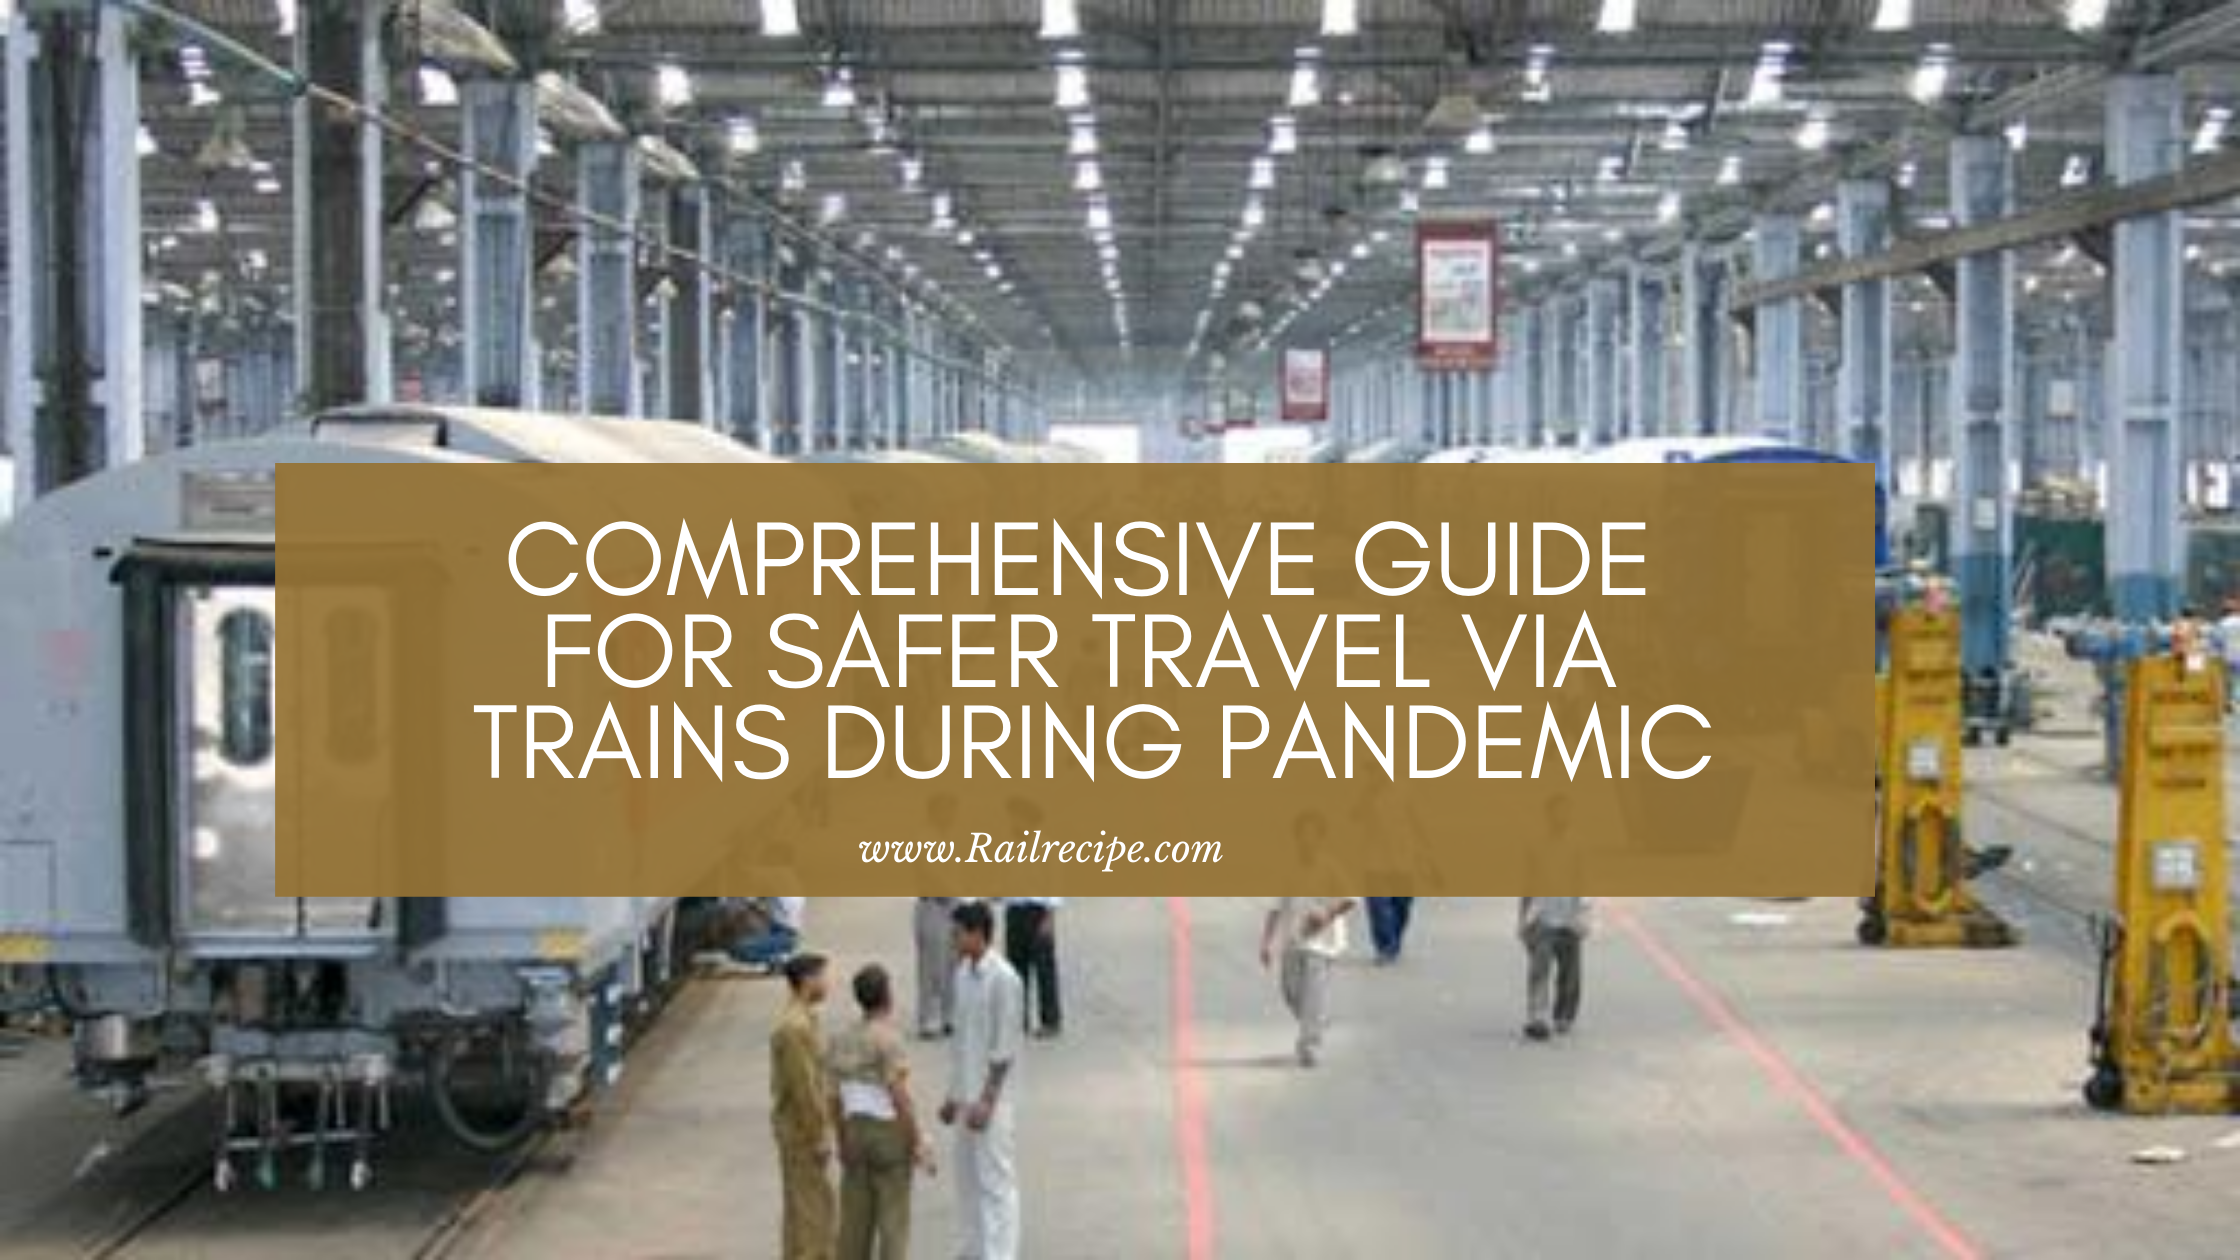 Comprehensive Guide for Safer Travel via Trains During Pandemic